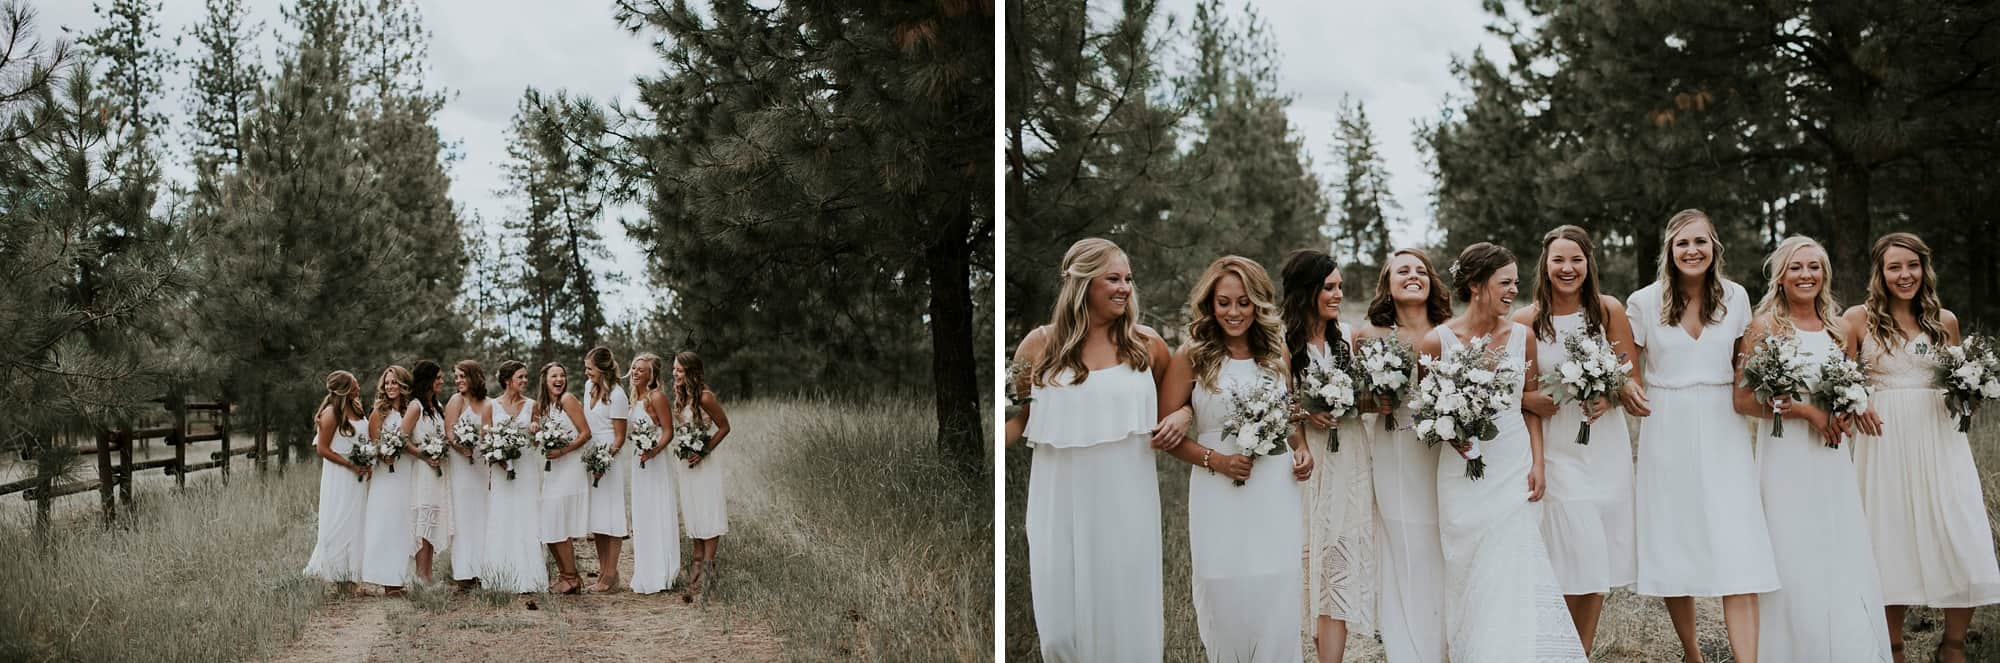 maisie-morgan-spokane-washington-pacific-northwest-backyard-wedding-00011